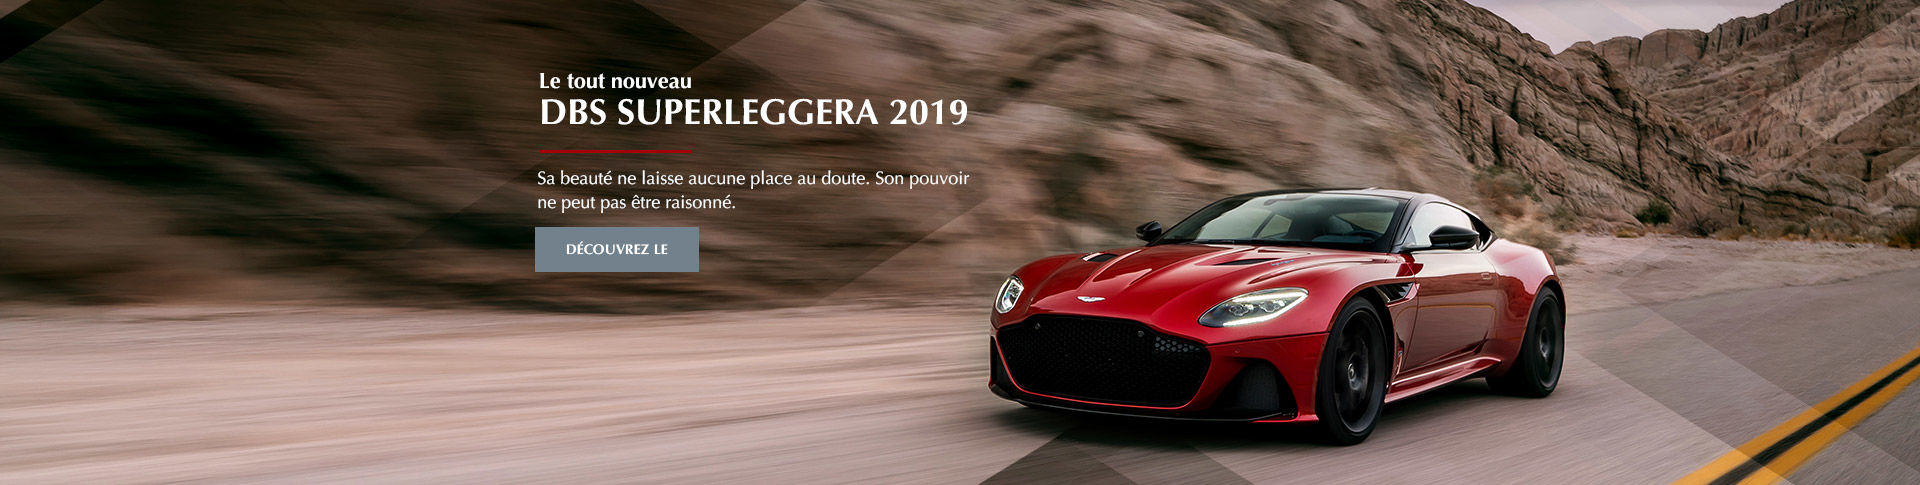 DBS Superleggera 2019